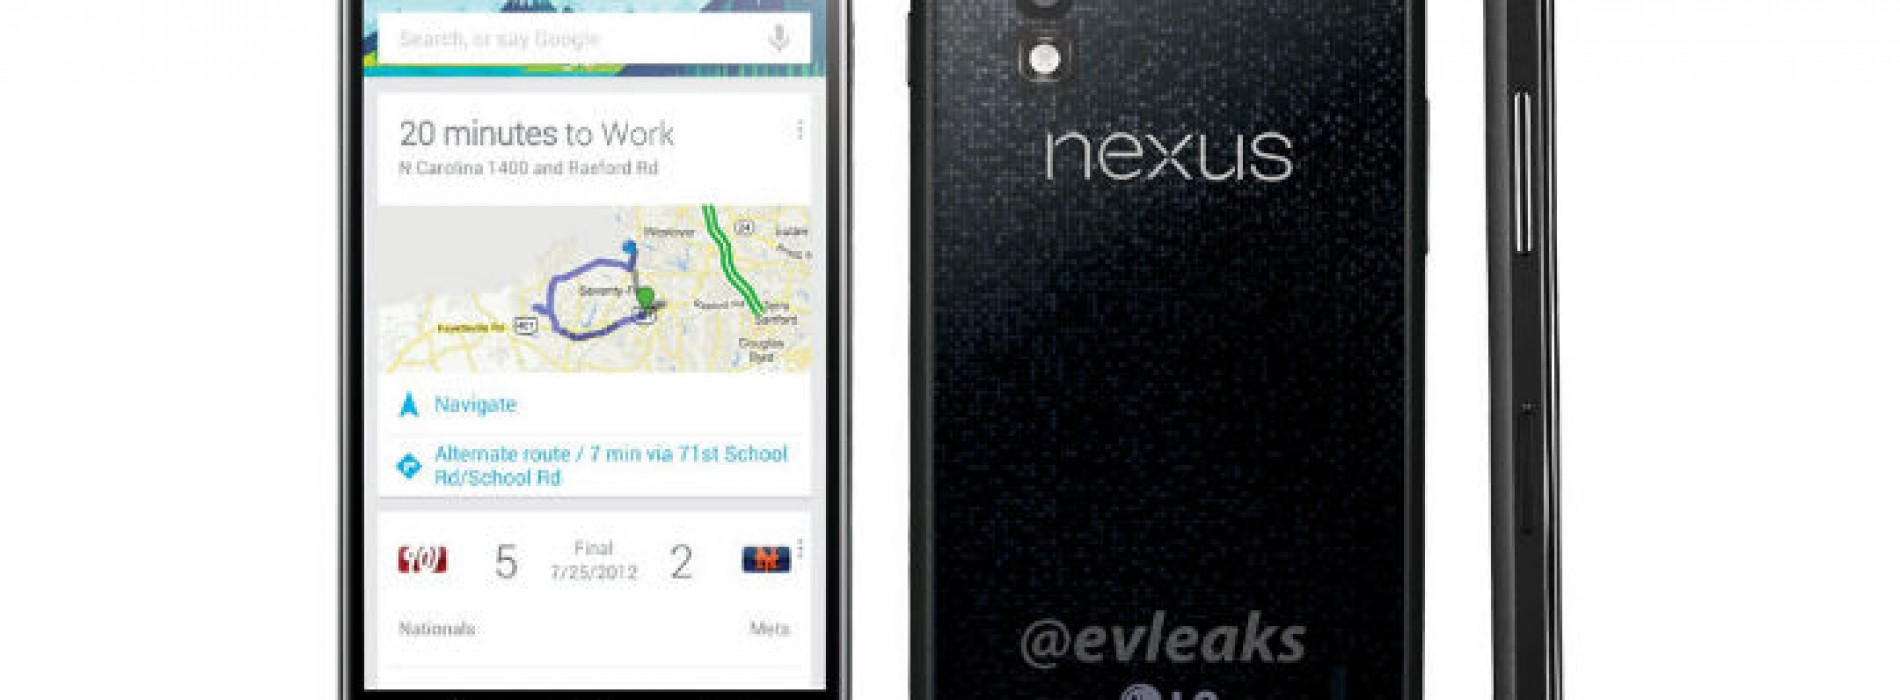 Nexus 4 available again through T-Mobile website